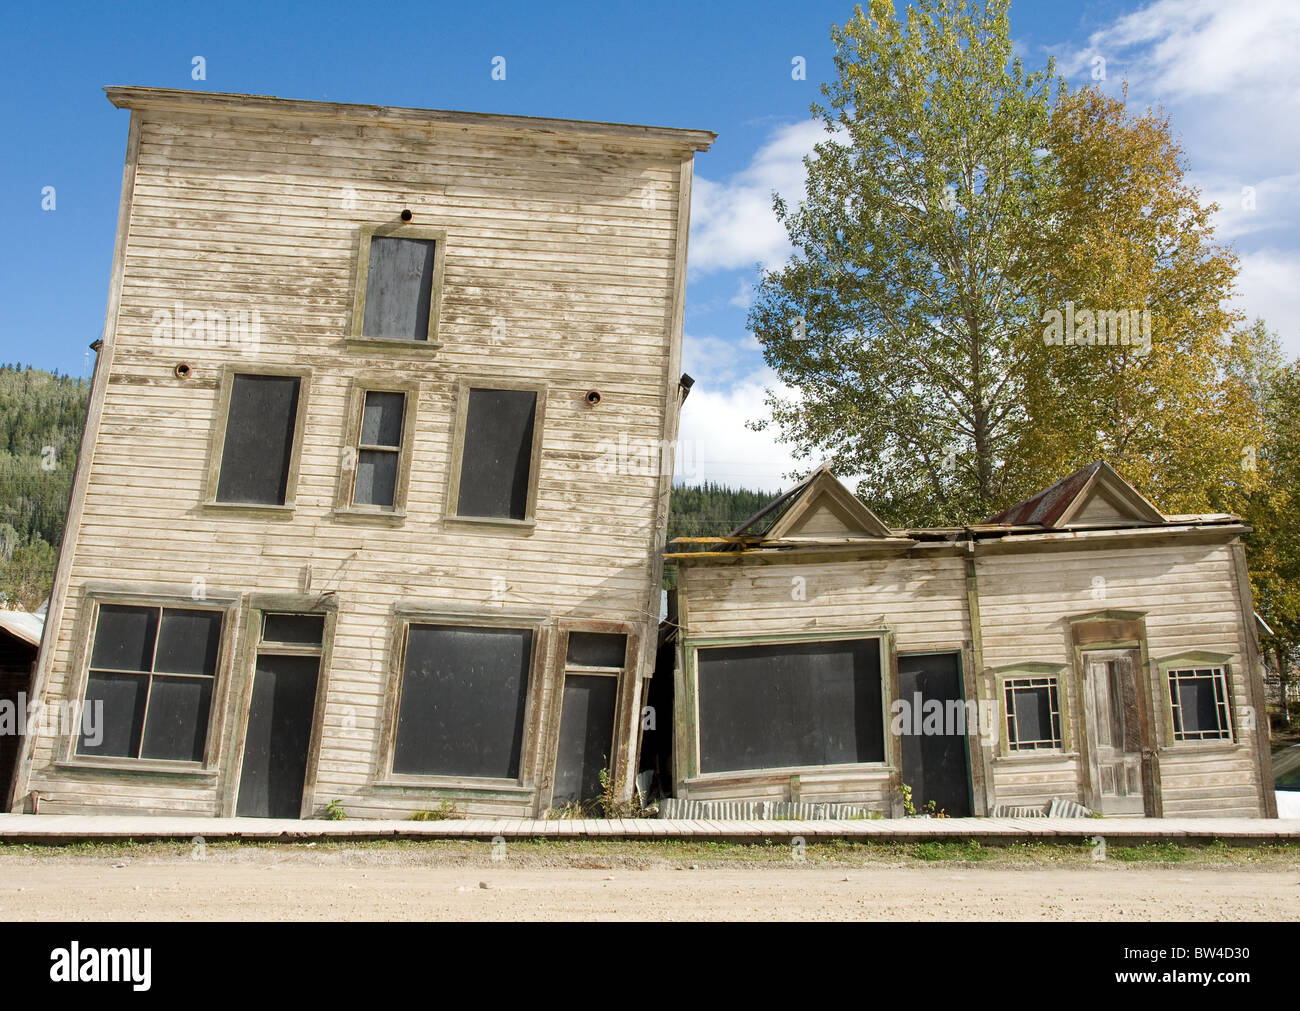 Two heritage buildings in Dawson city, Yukon, slant towards each other due to melted permafrost - Stock Image